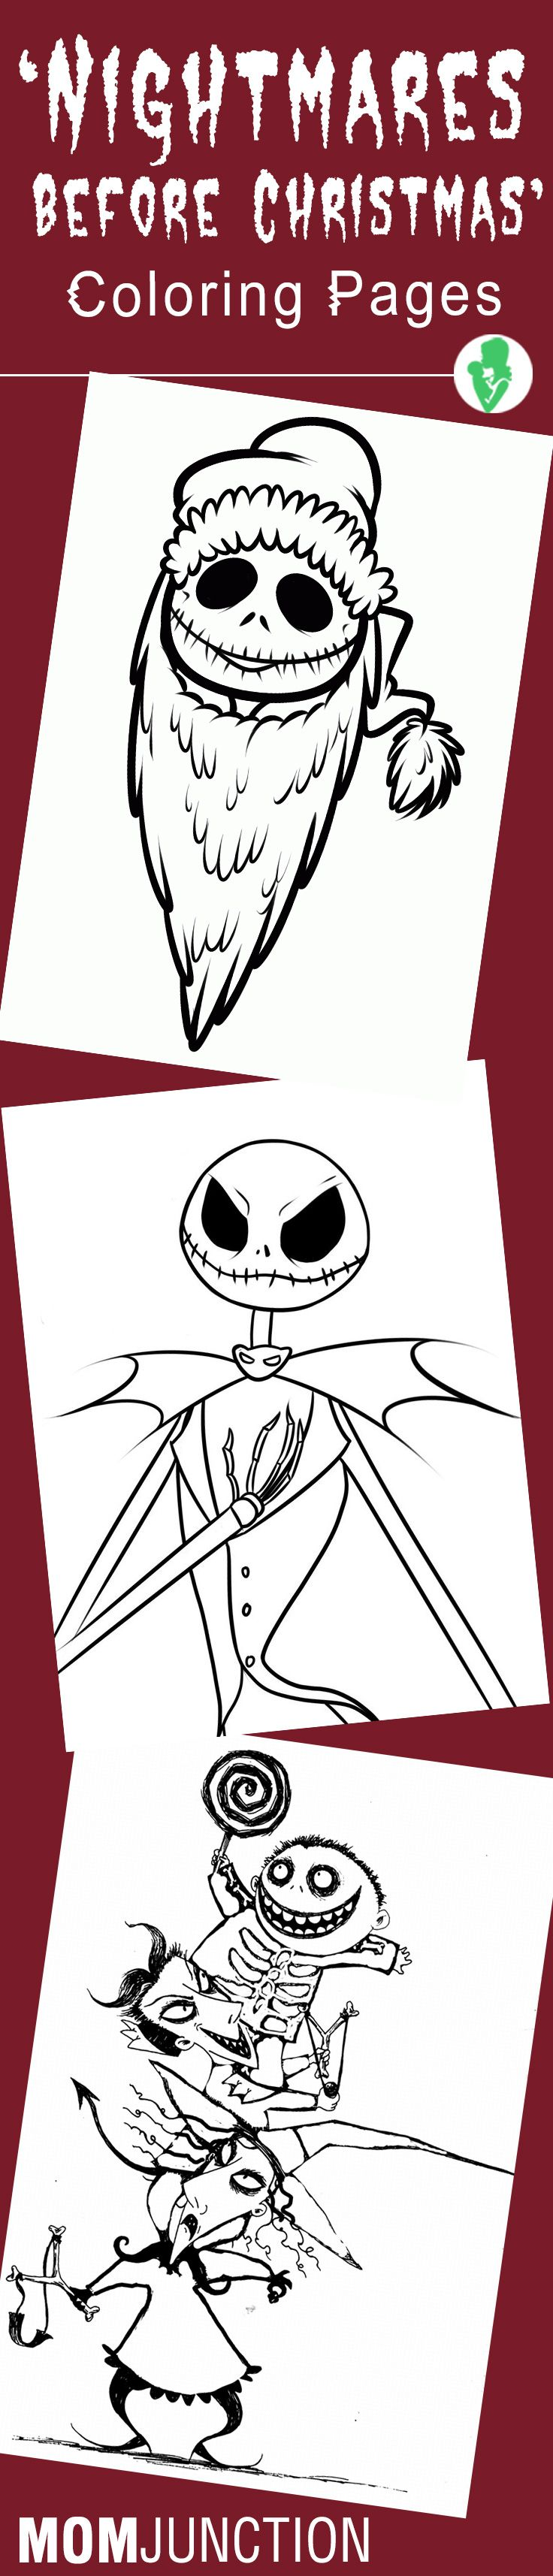 Top unightmare before christmasu coloring pages for your little